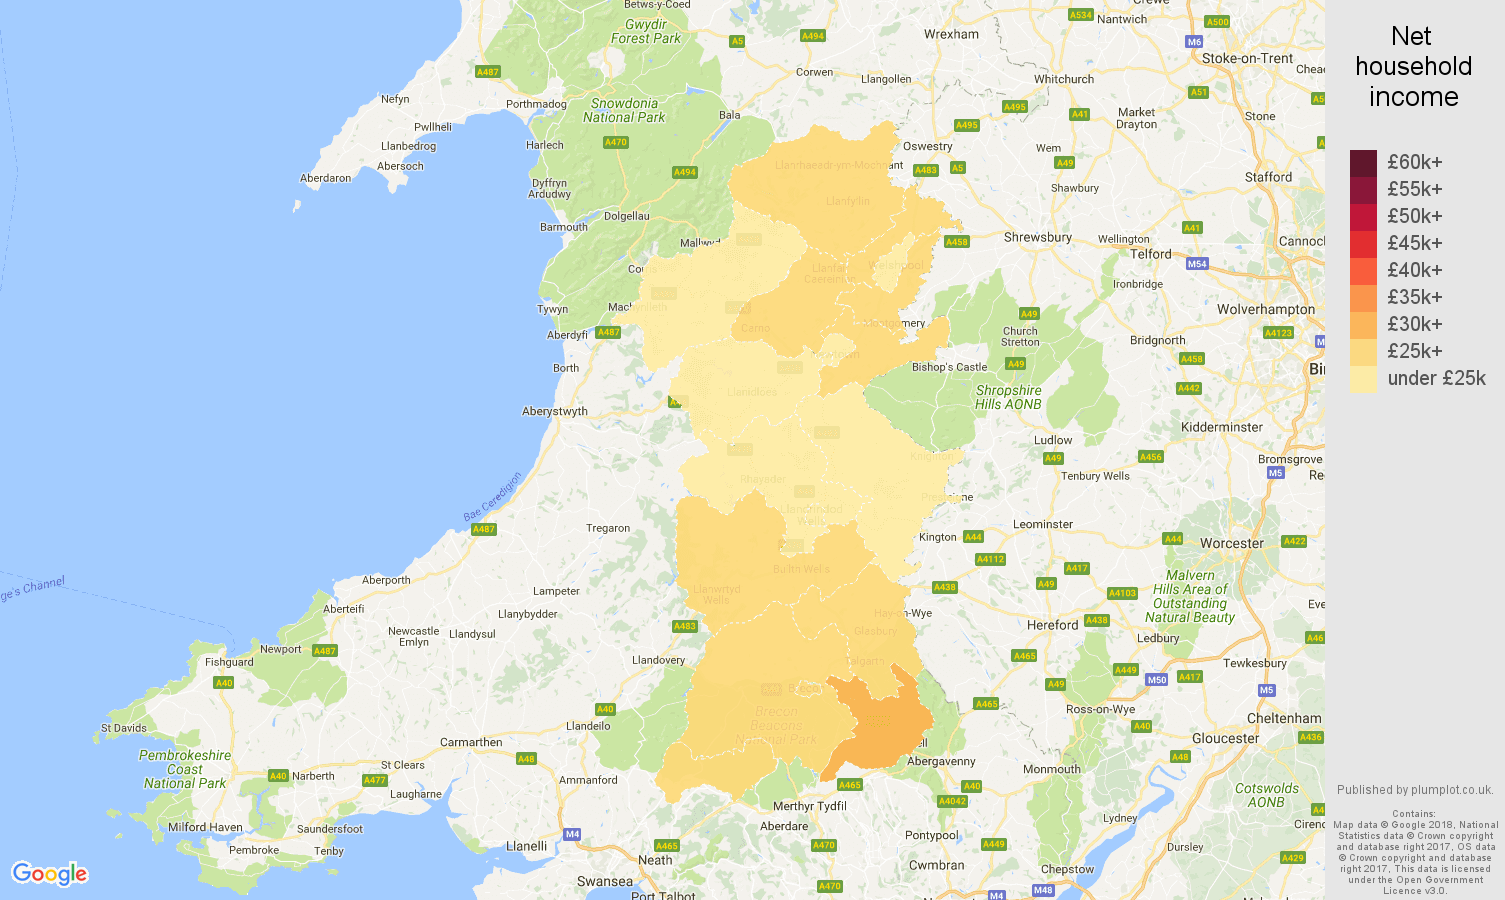 Powys net household income map